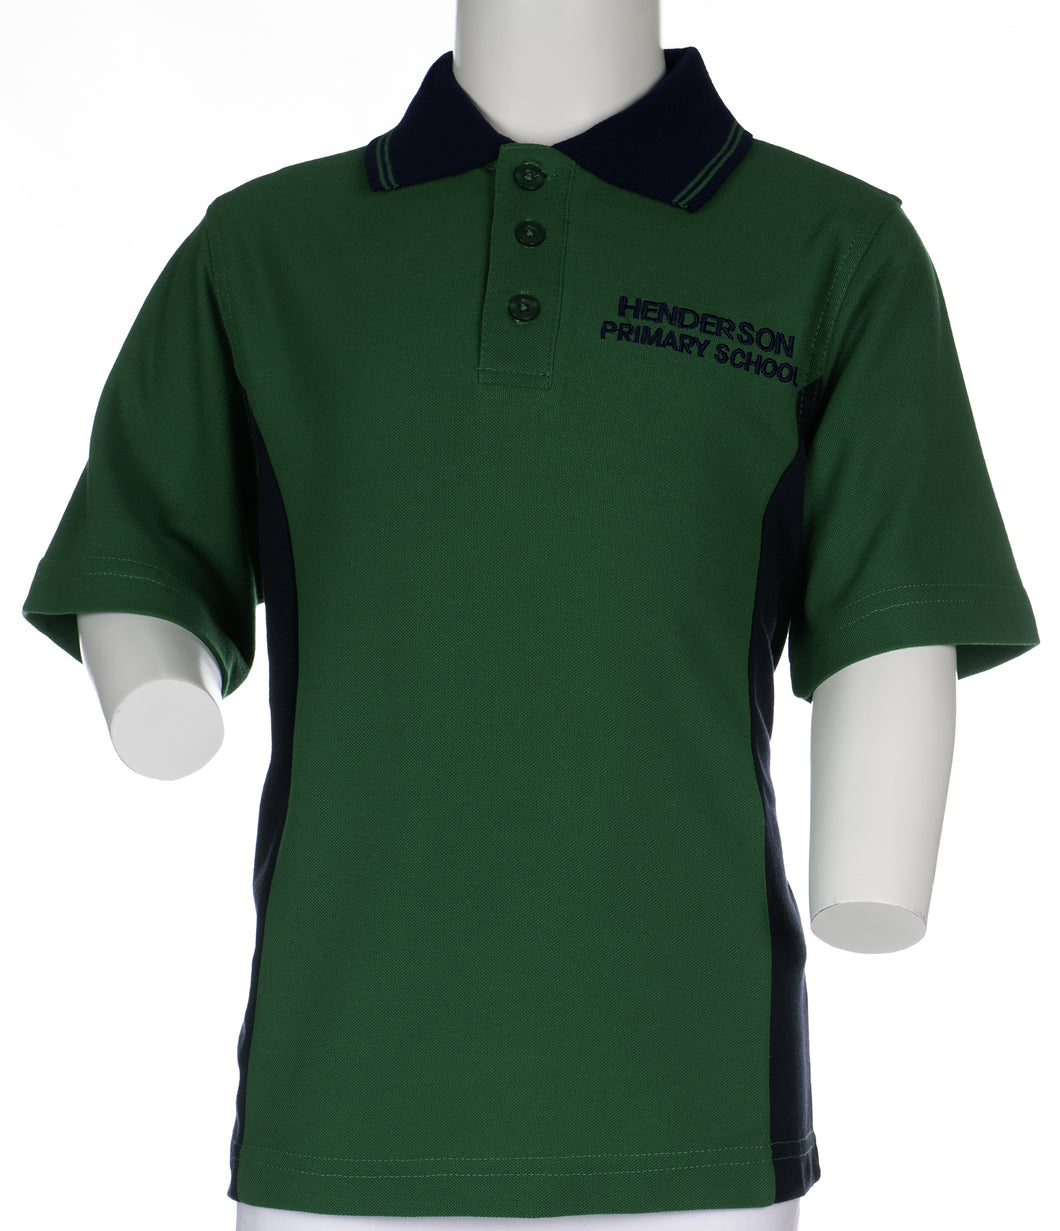 Henderson Primary School - Short Sleeve Polo Shirt